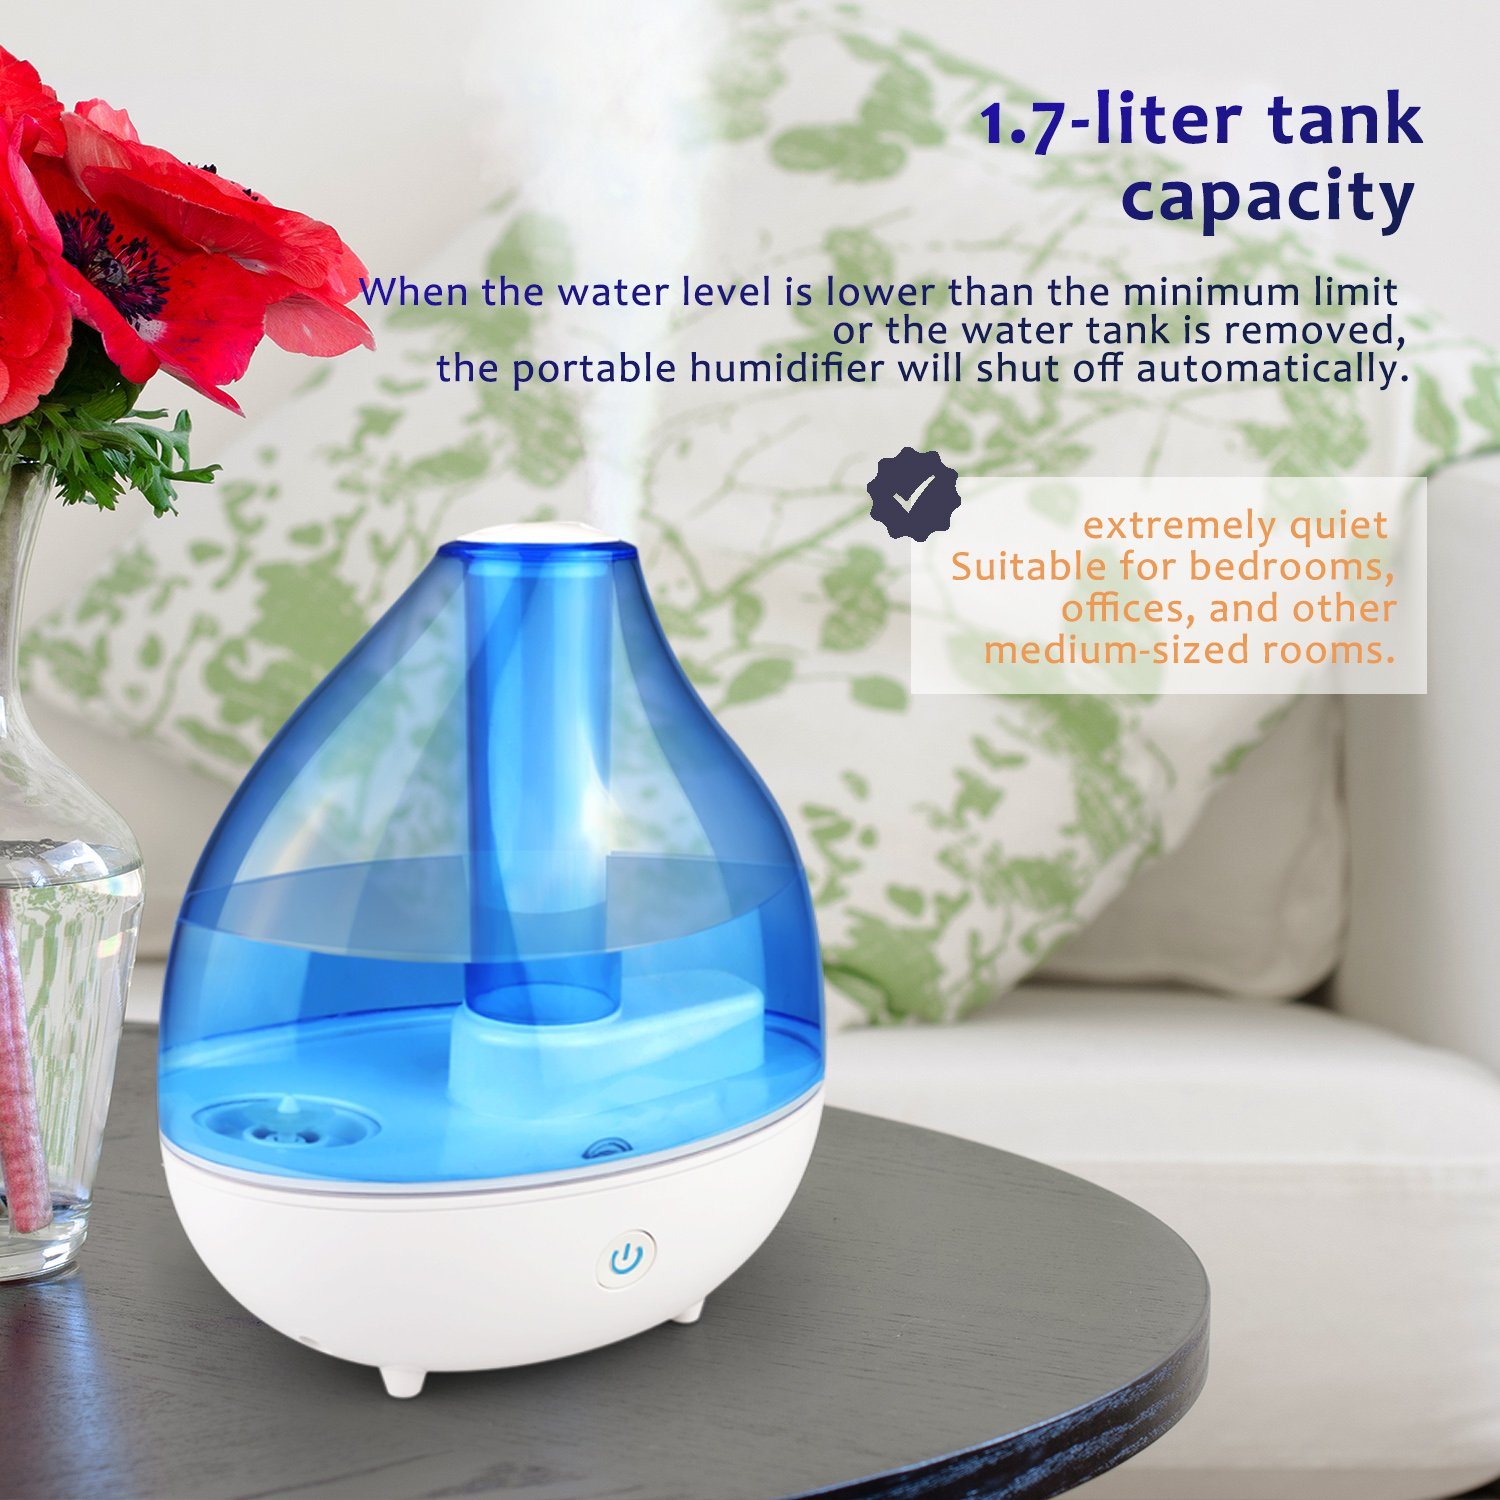 DONGSHEN Ultrasonic Cool Mist Humidifier 1.7L Capacity Diffuser Humidifiers for Bedroom Portable Personal Humidifier about 10-12 Hours, Automatically Shut-off (White) by DONGSHEN